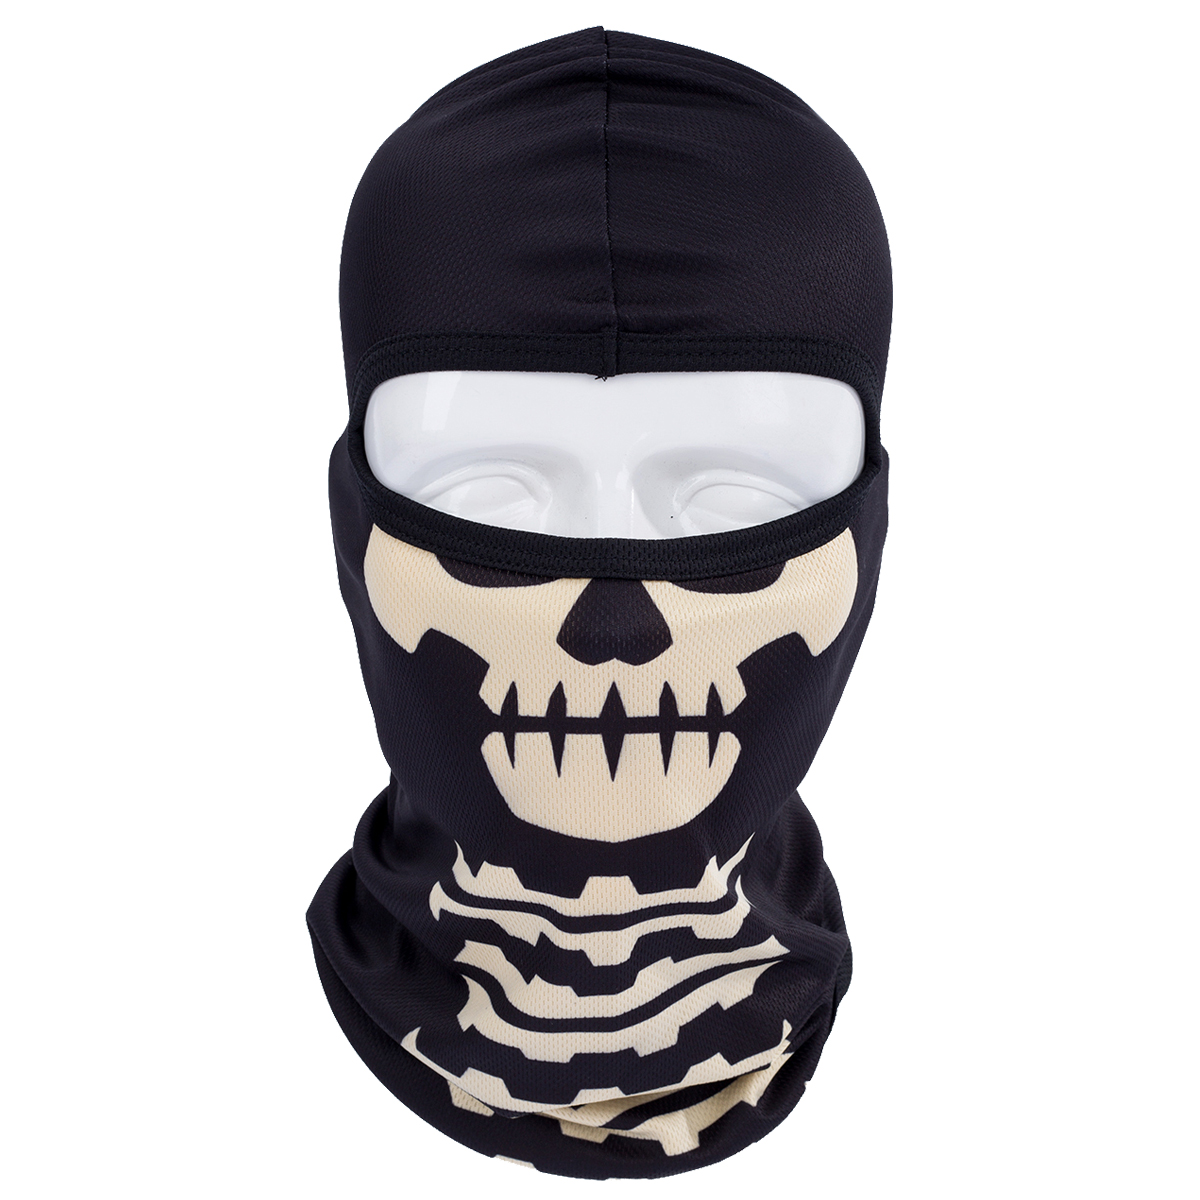 Compare Prices on Monkey Ghost- Online Shopping/Buy Low Price ...